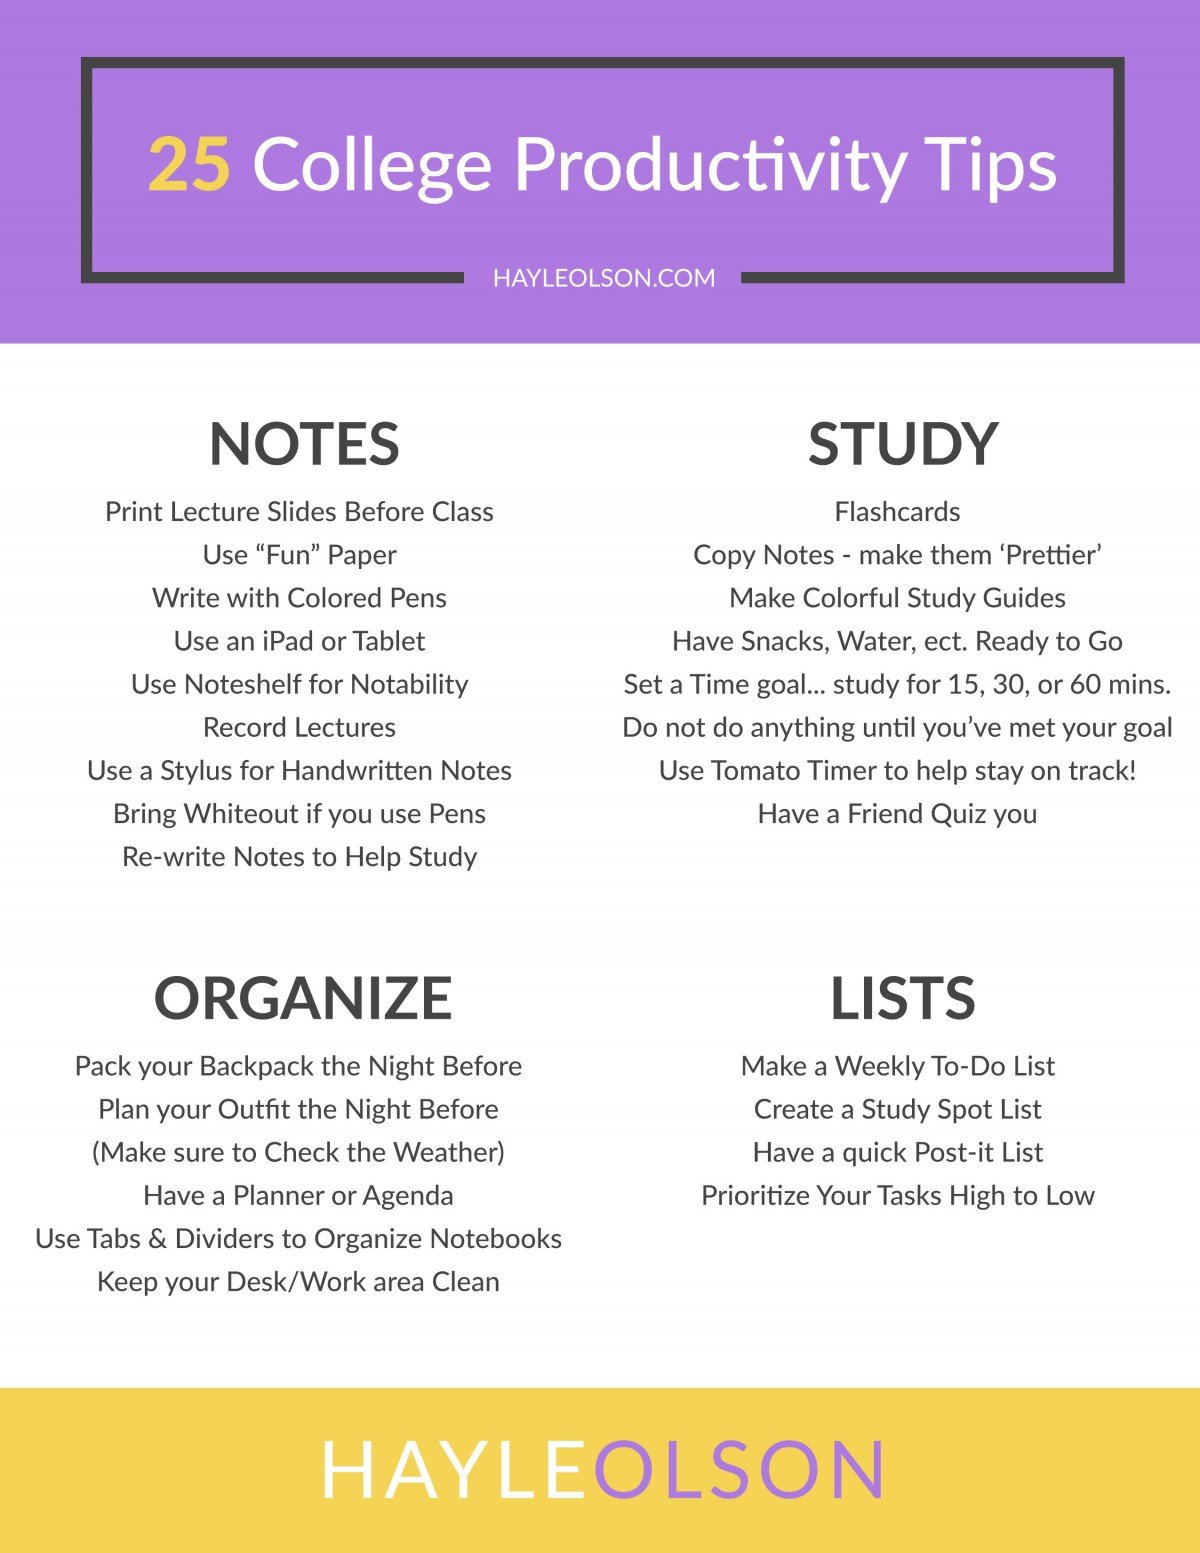 25 College Productivity Tips | College Tips | Hayle Olson | www.hayleolson.com